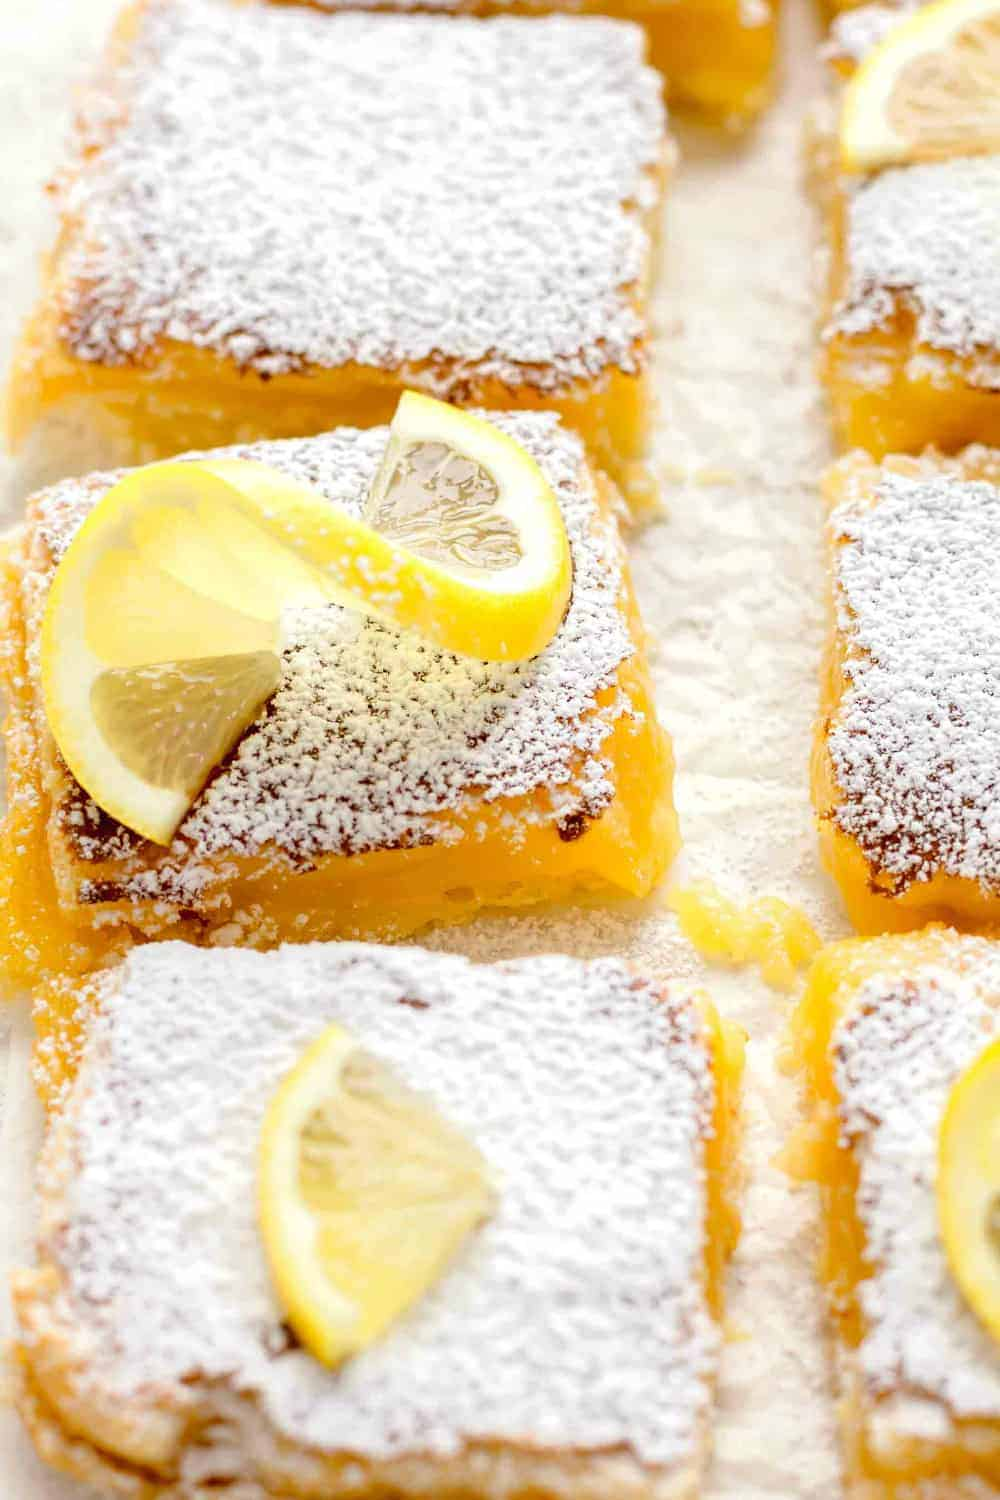 Close-up overhead view of sliced homemade lemon bars dusted with powdered sugar